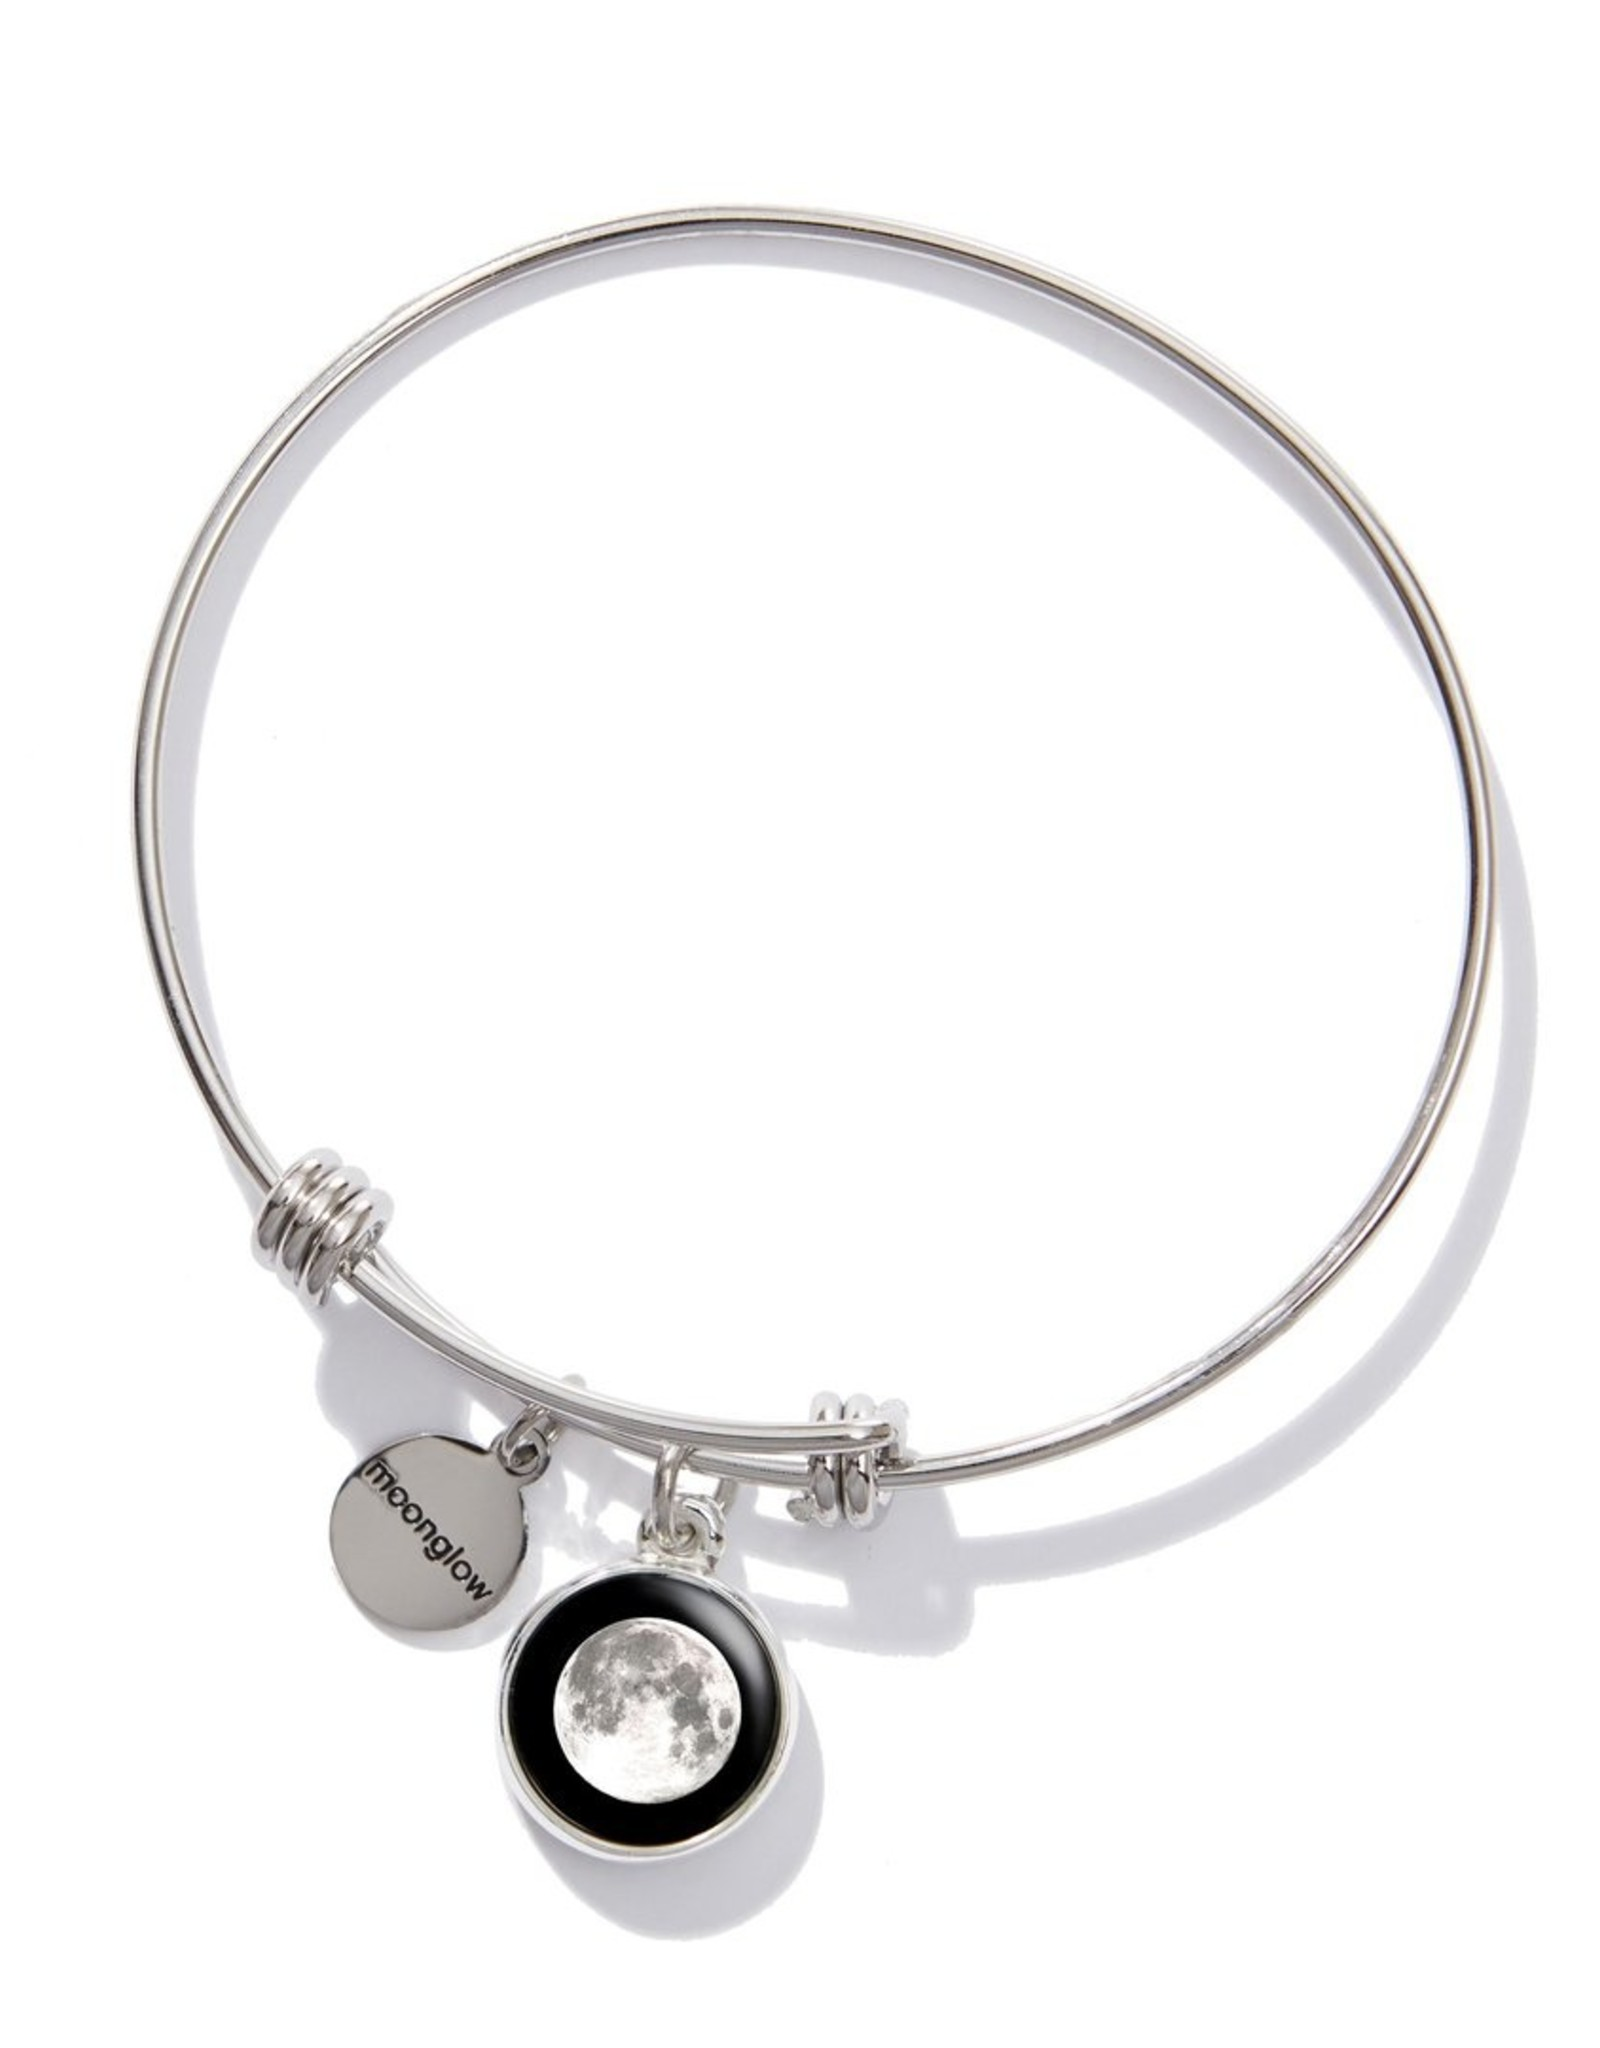 Moonglow Silver Bangle Bracelet